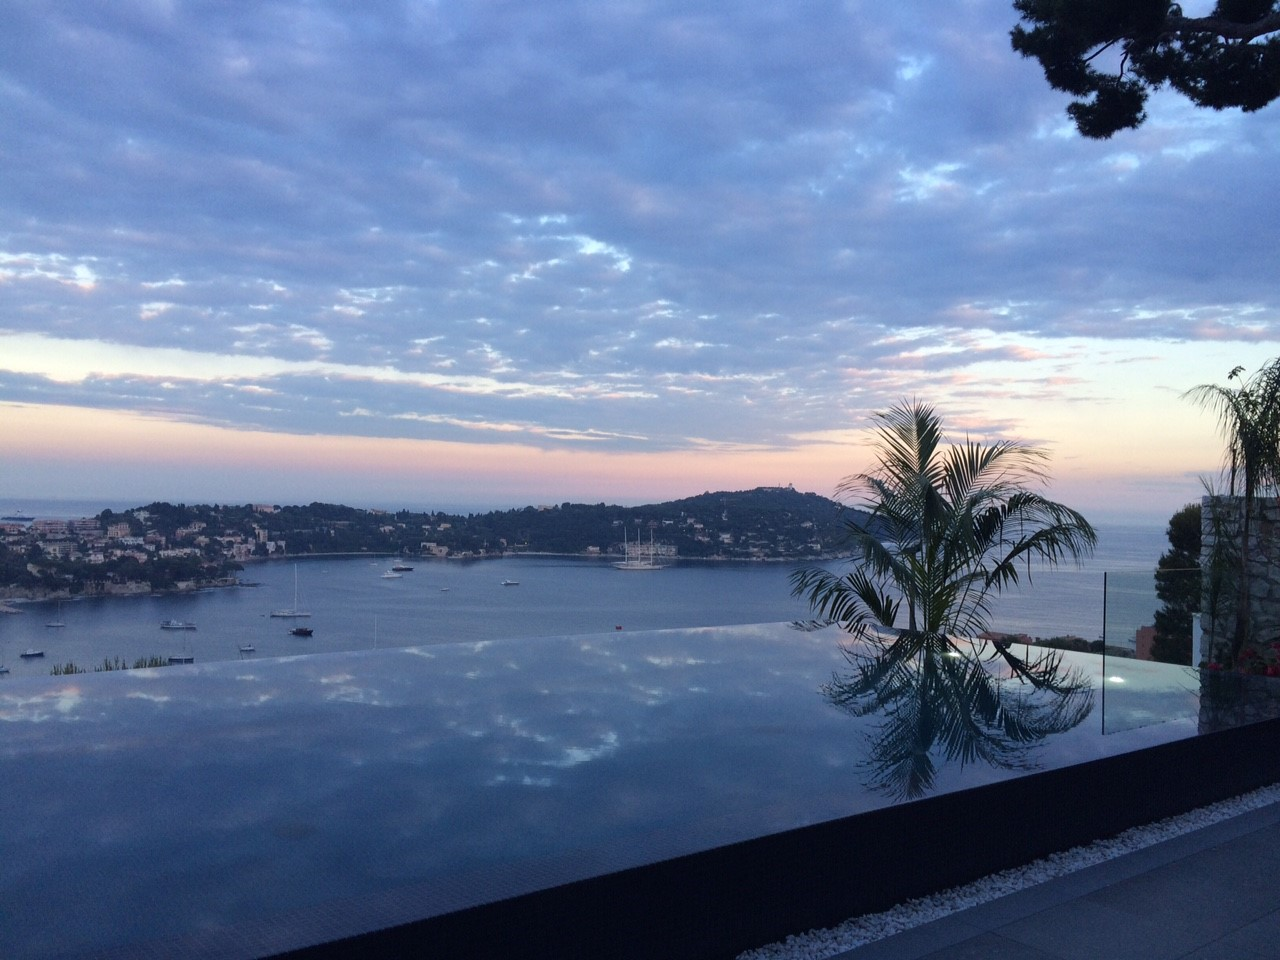 The ocean view beyond the infinity mirror pool from the villa terrace